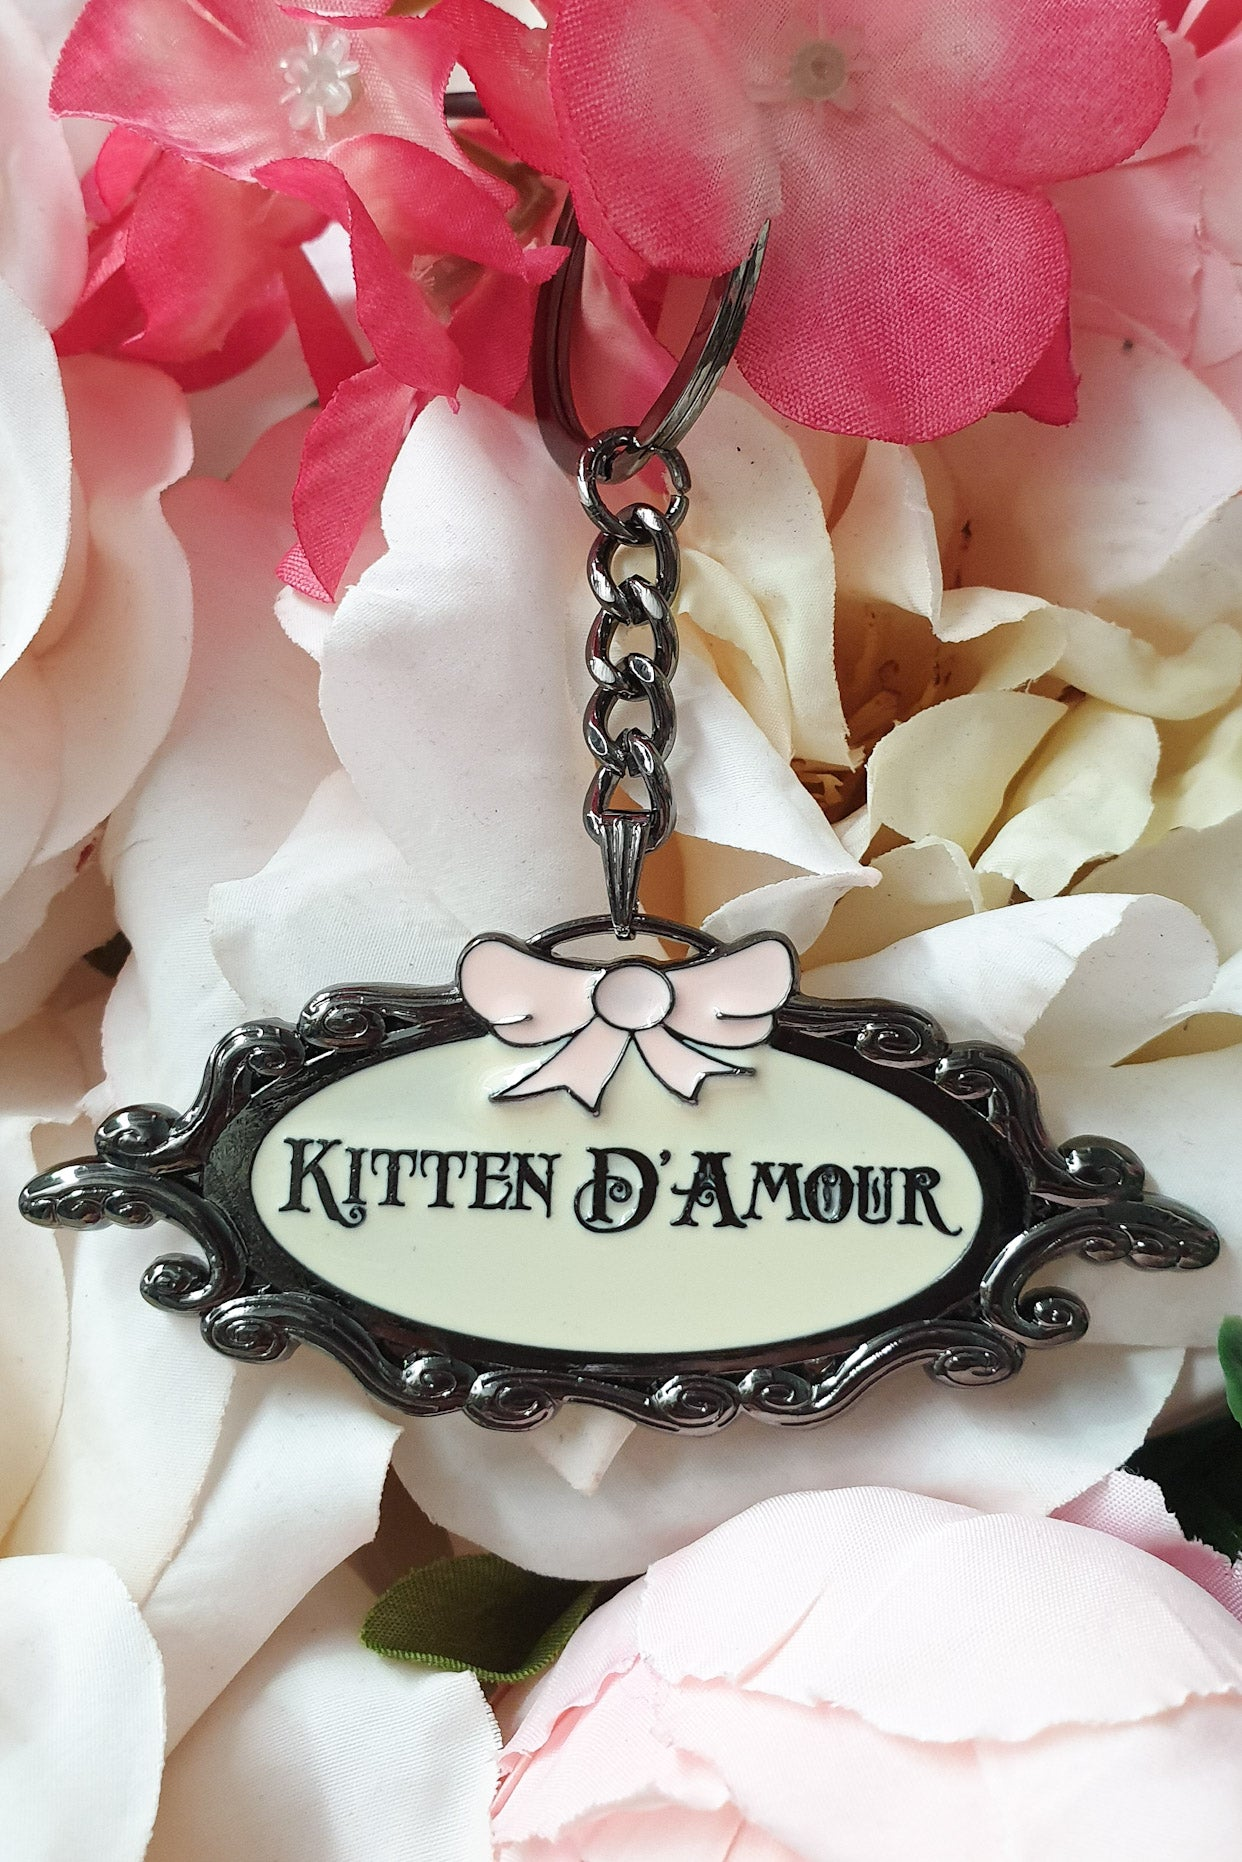 Kitten D'amour Key Chain